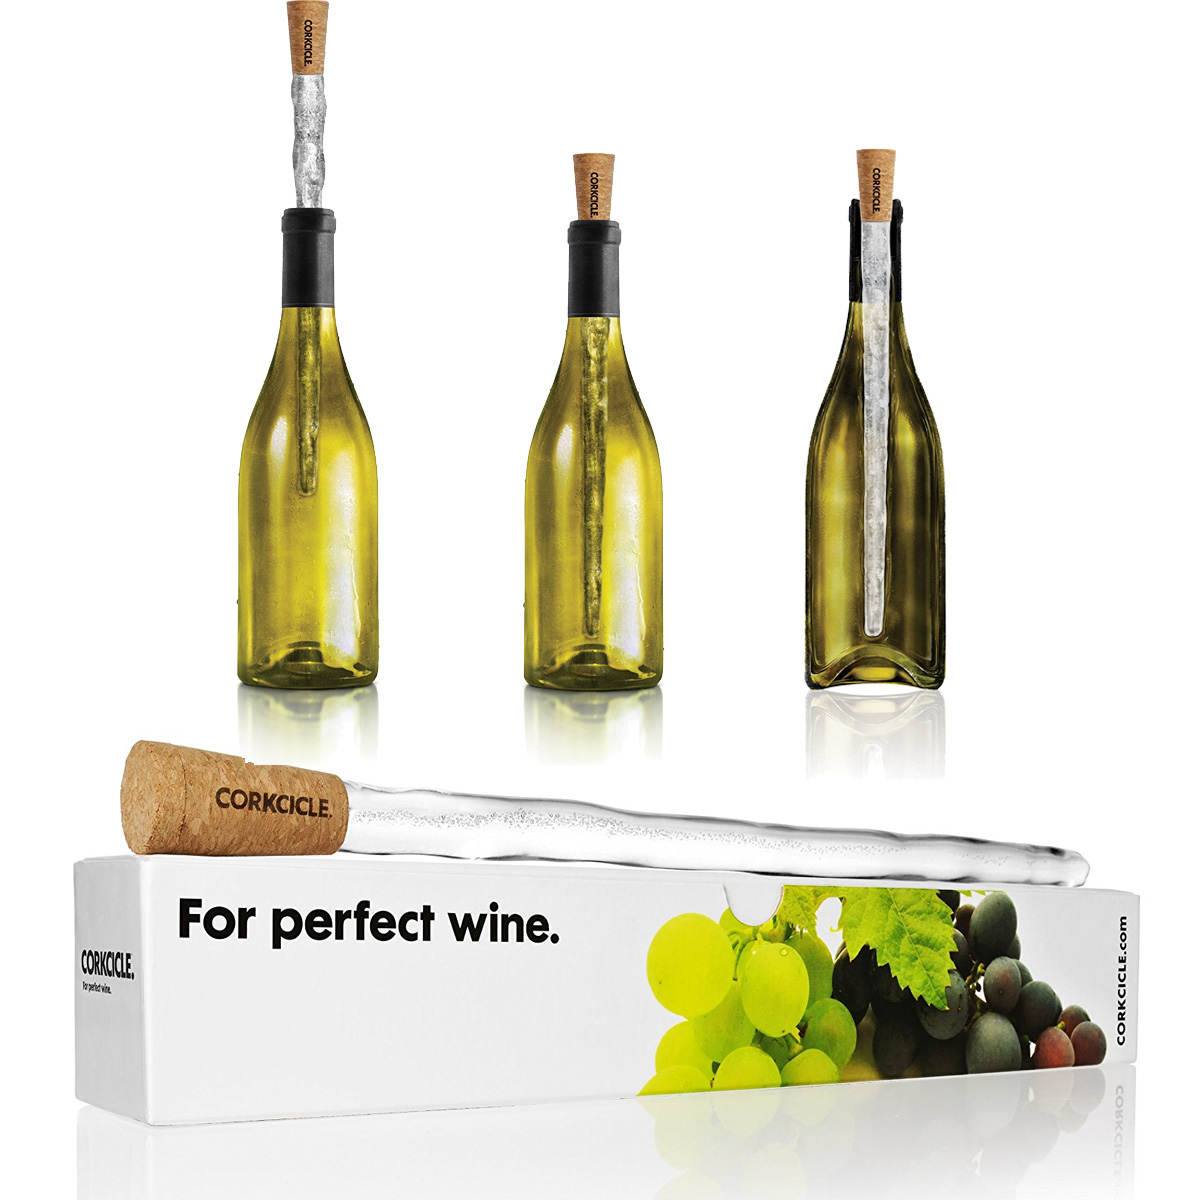 Details about NEW CORKCICLE WINE BOTTLE CHILLER COOLER COOLING ICE CORK ROD  STICK XMAS GIFT